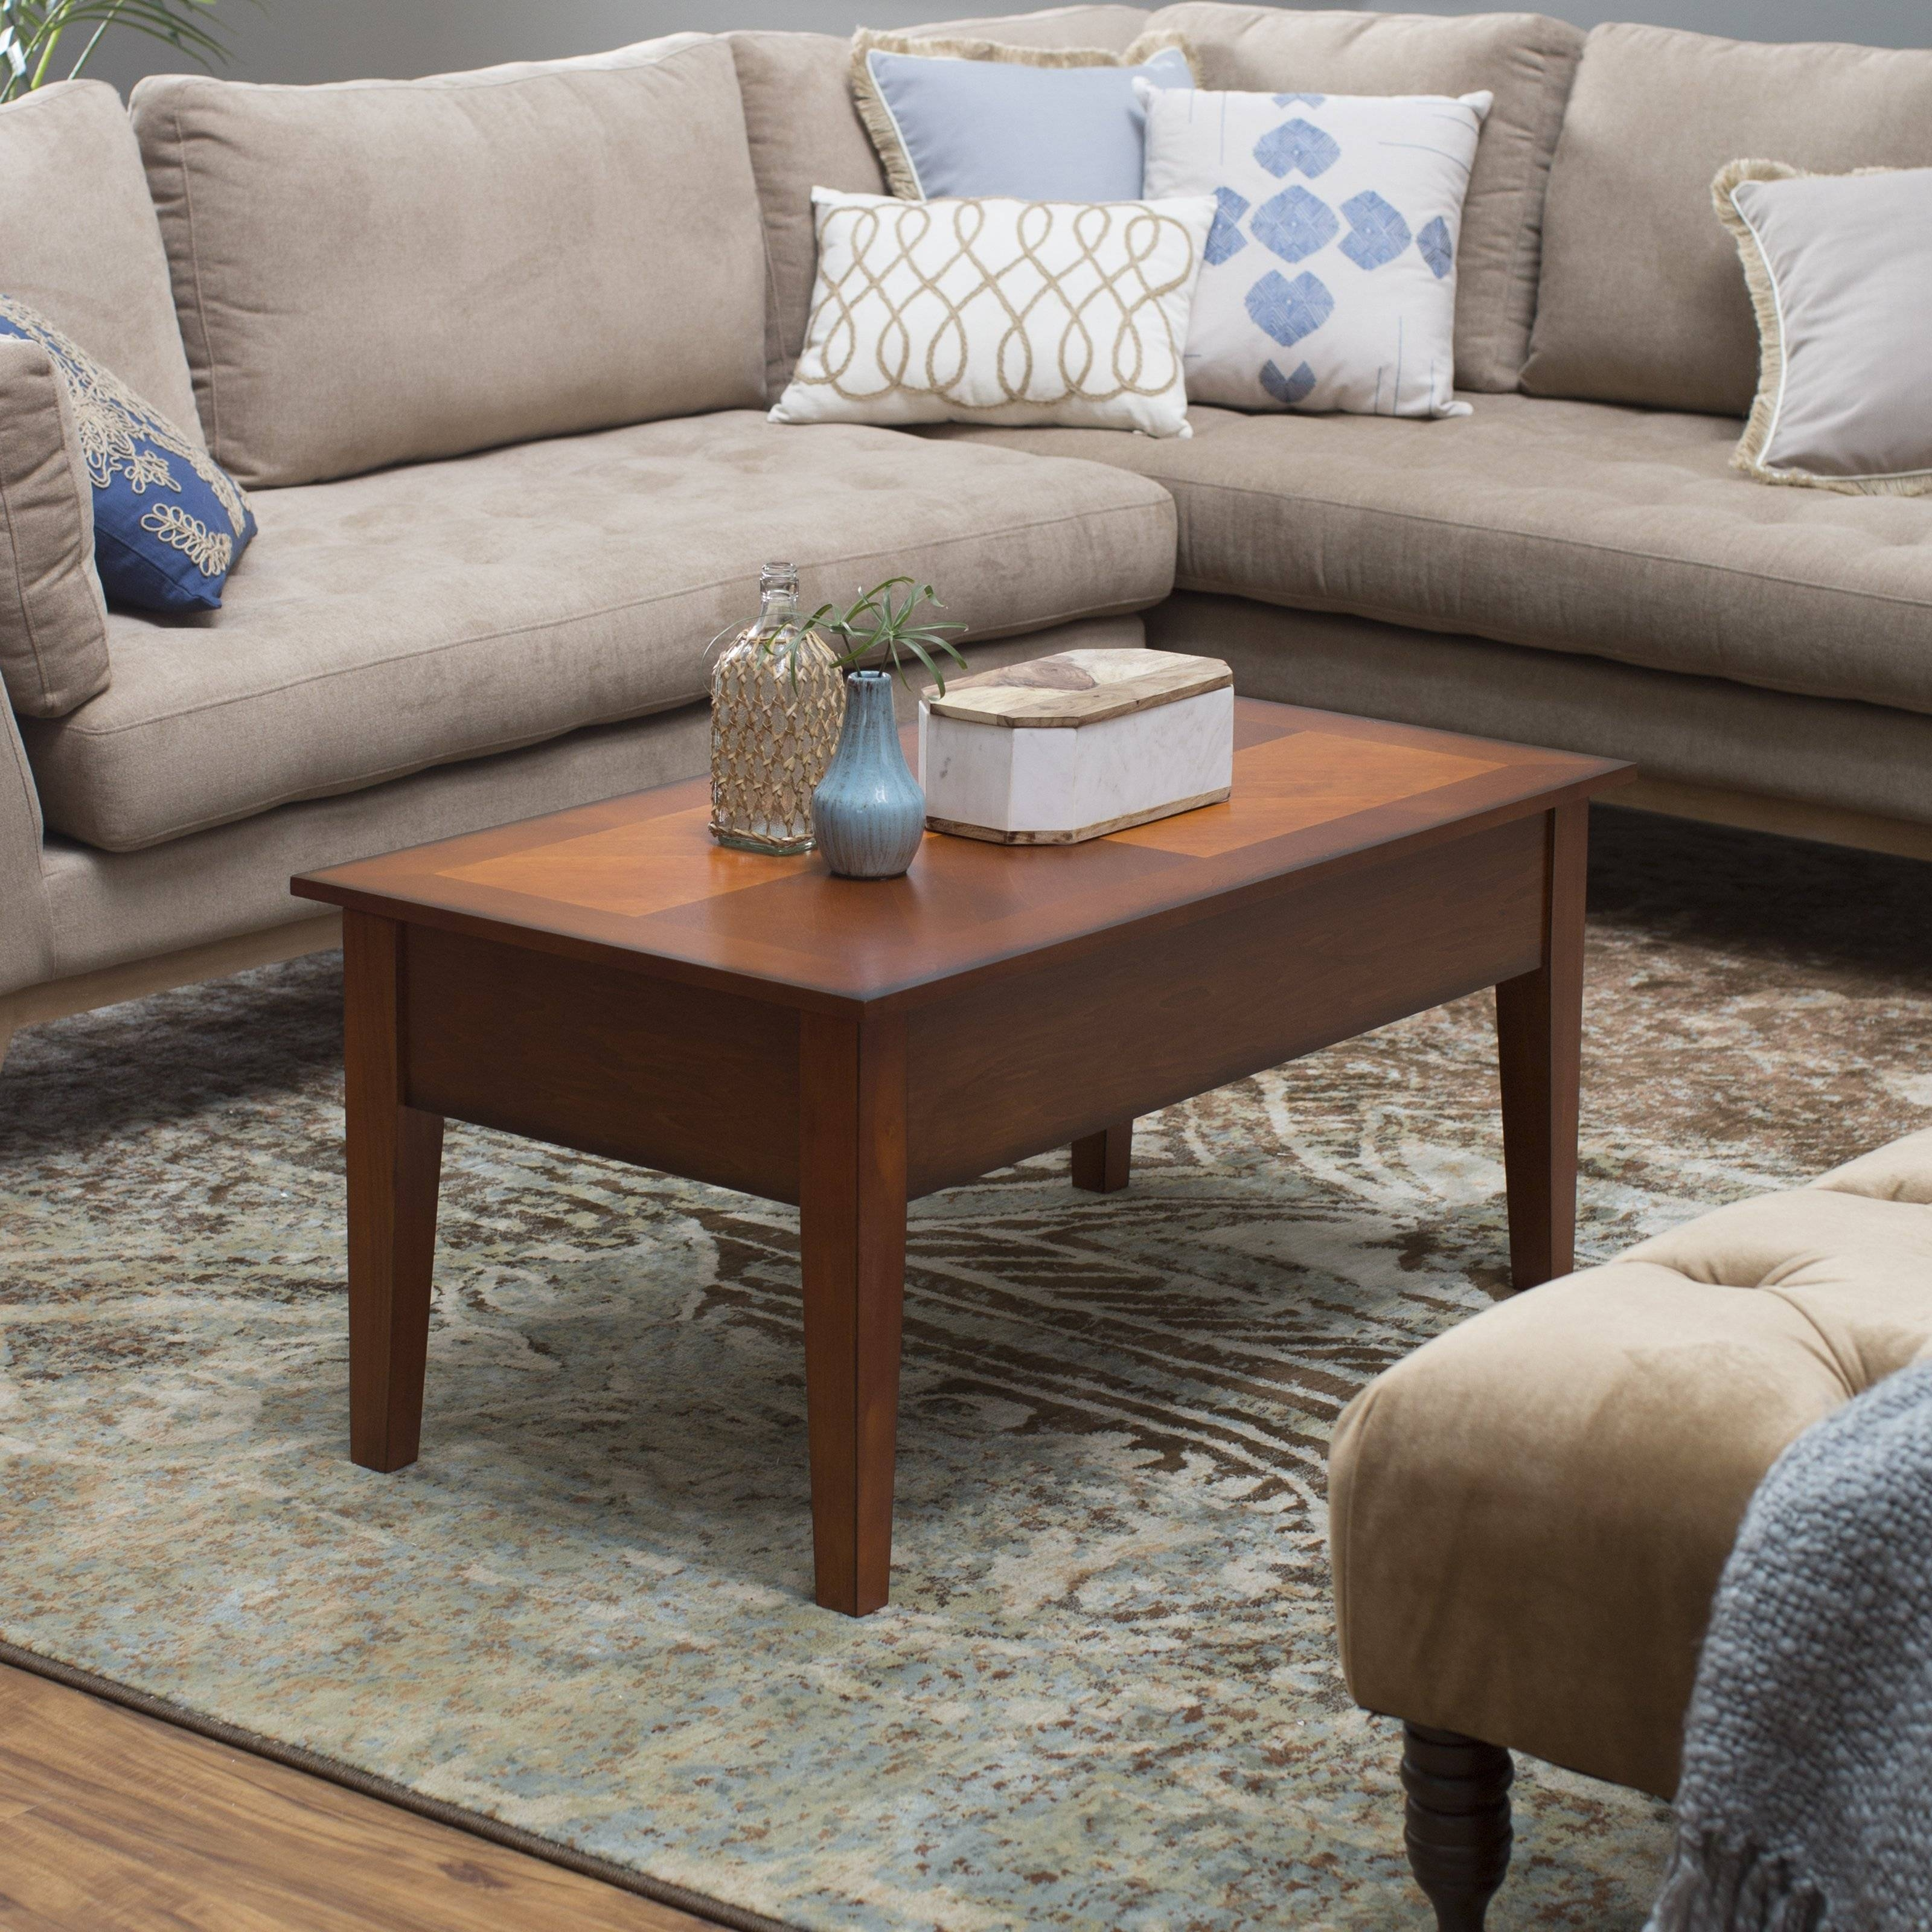 Turner Lift Top Coffee Table – Espresso | Hayneedle Pertaining To Lift Coffee Tables (View 24 of 30)